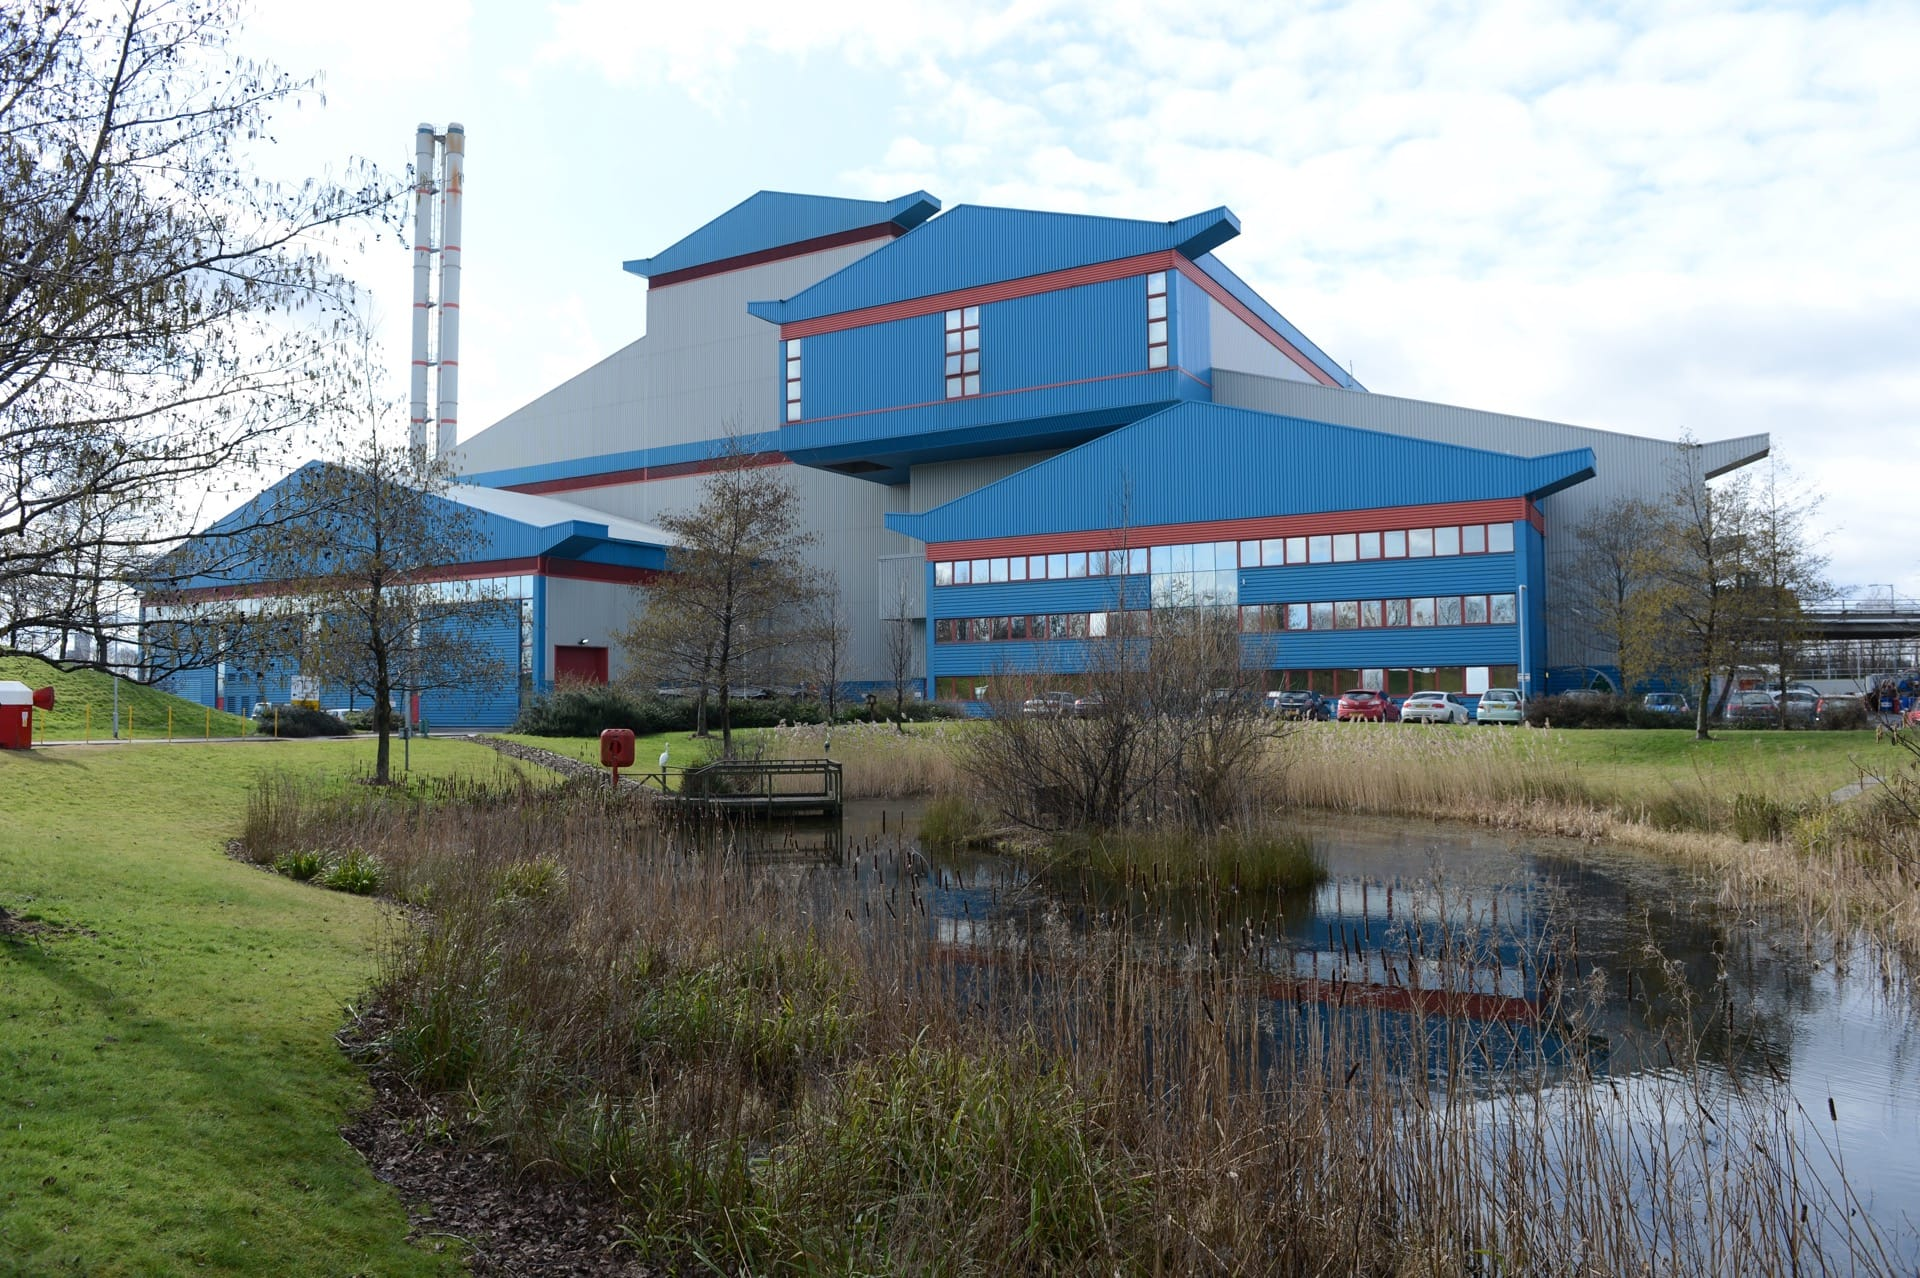 Teesside EfW Plant – Cleveland